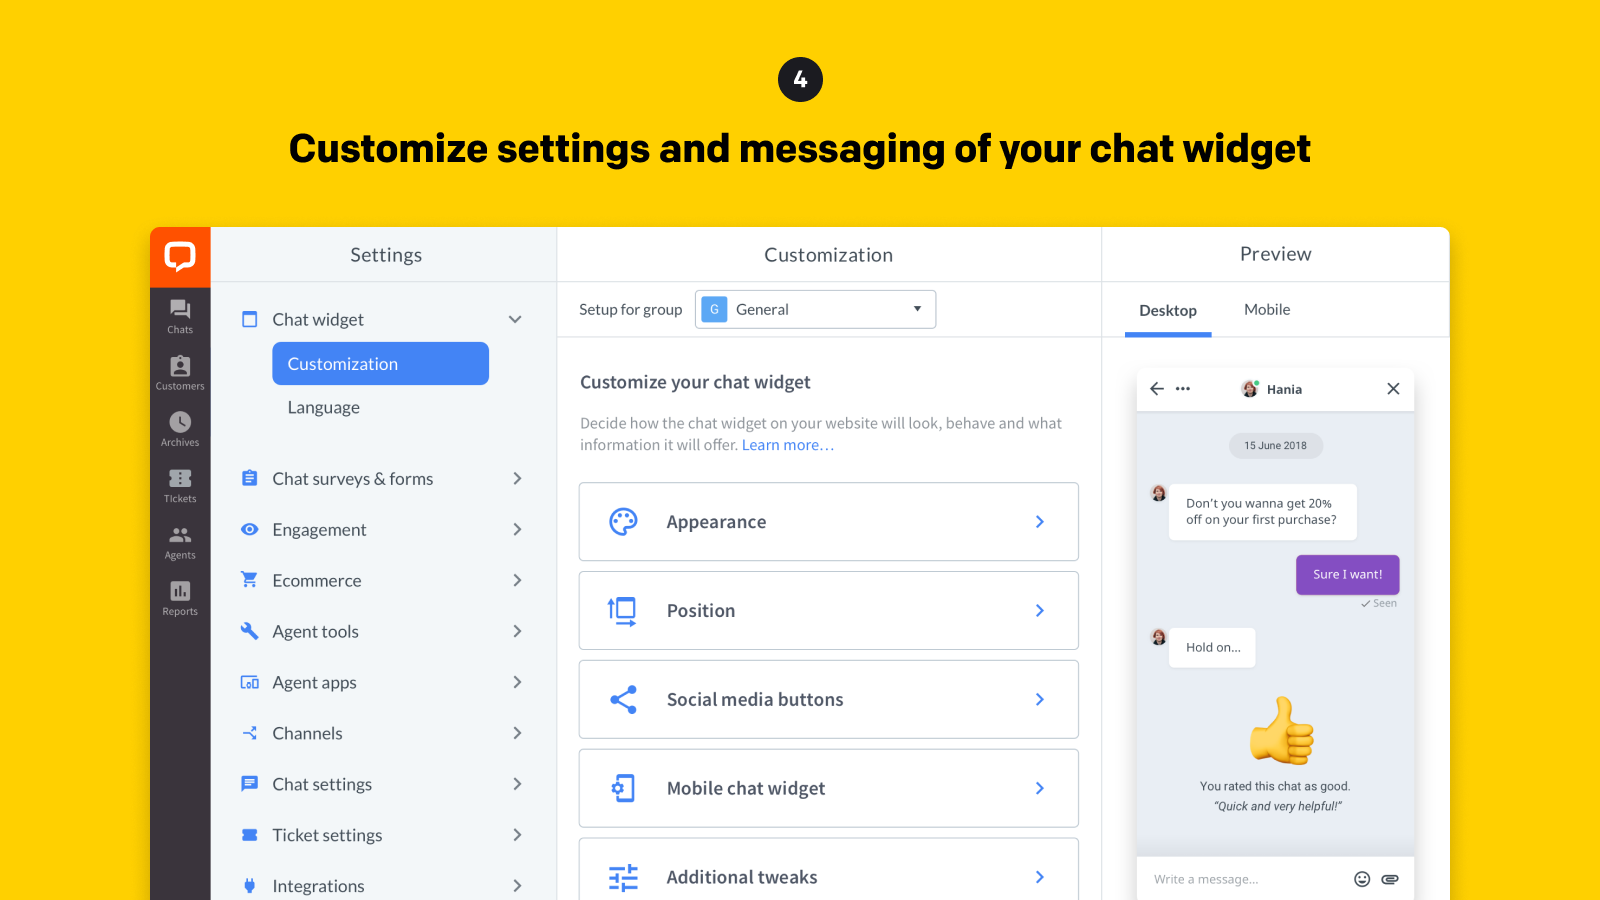 Customize settings and messaging of your chat widget